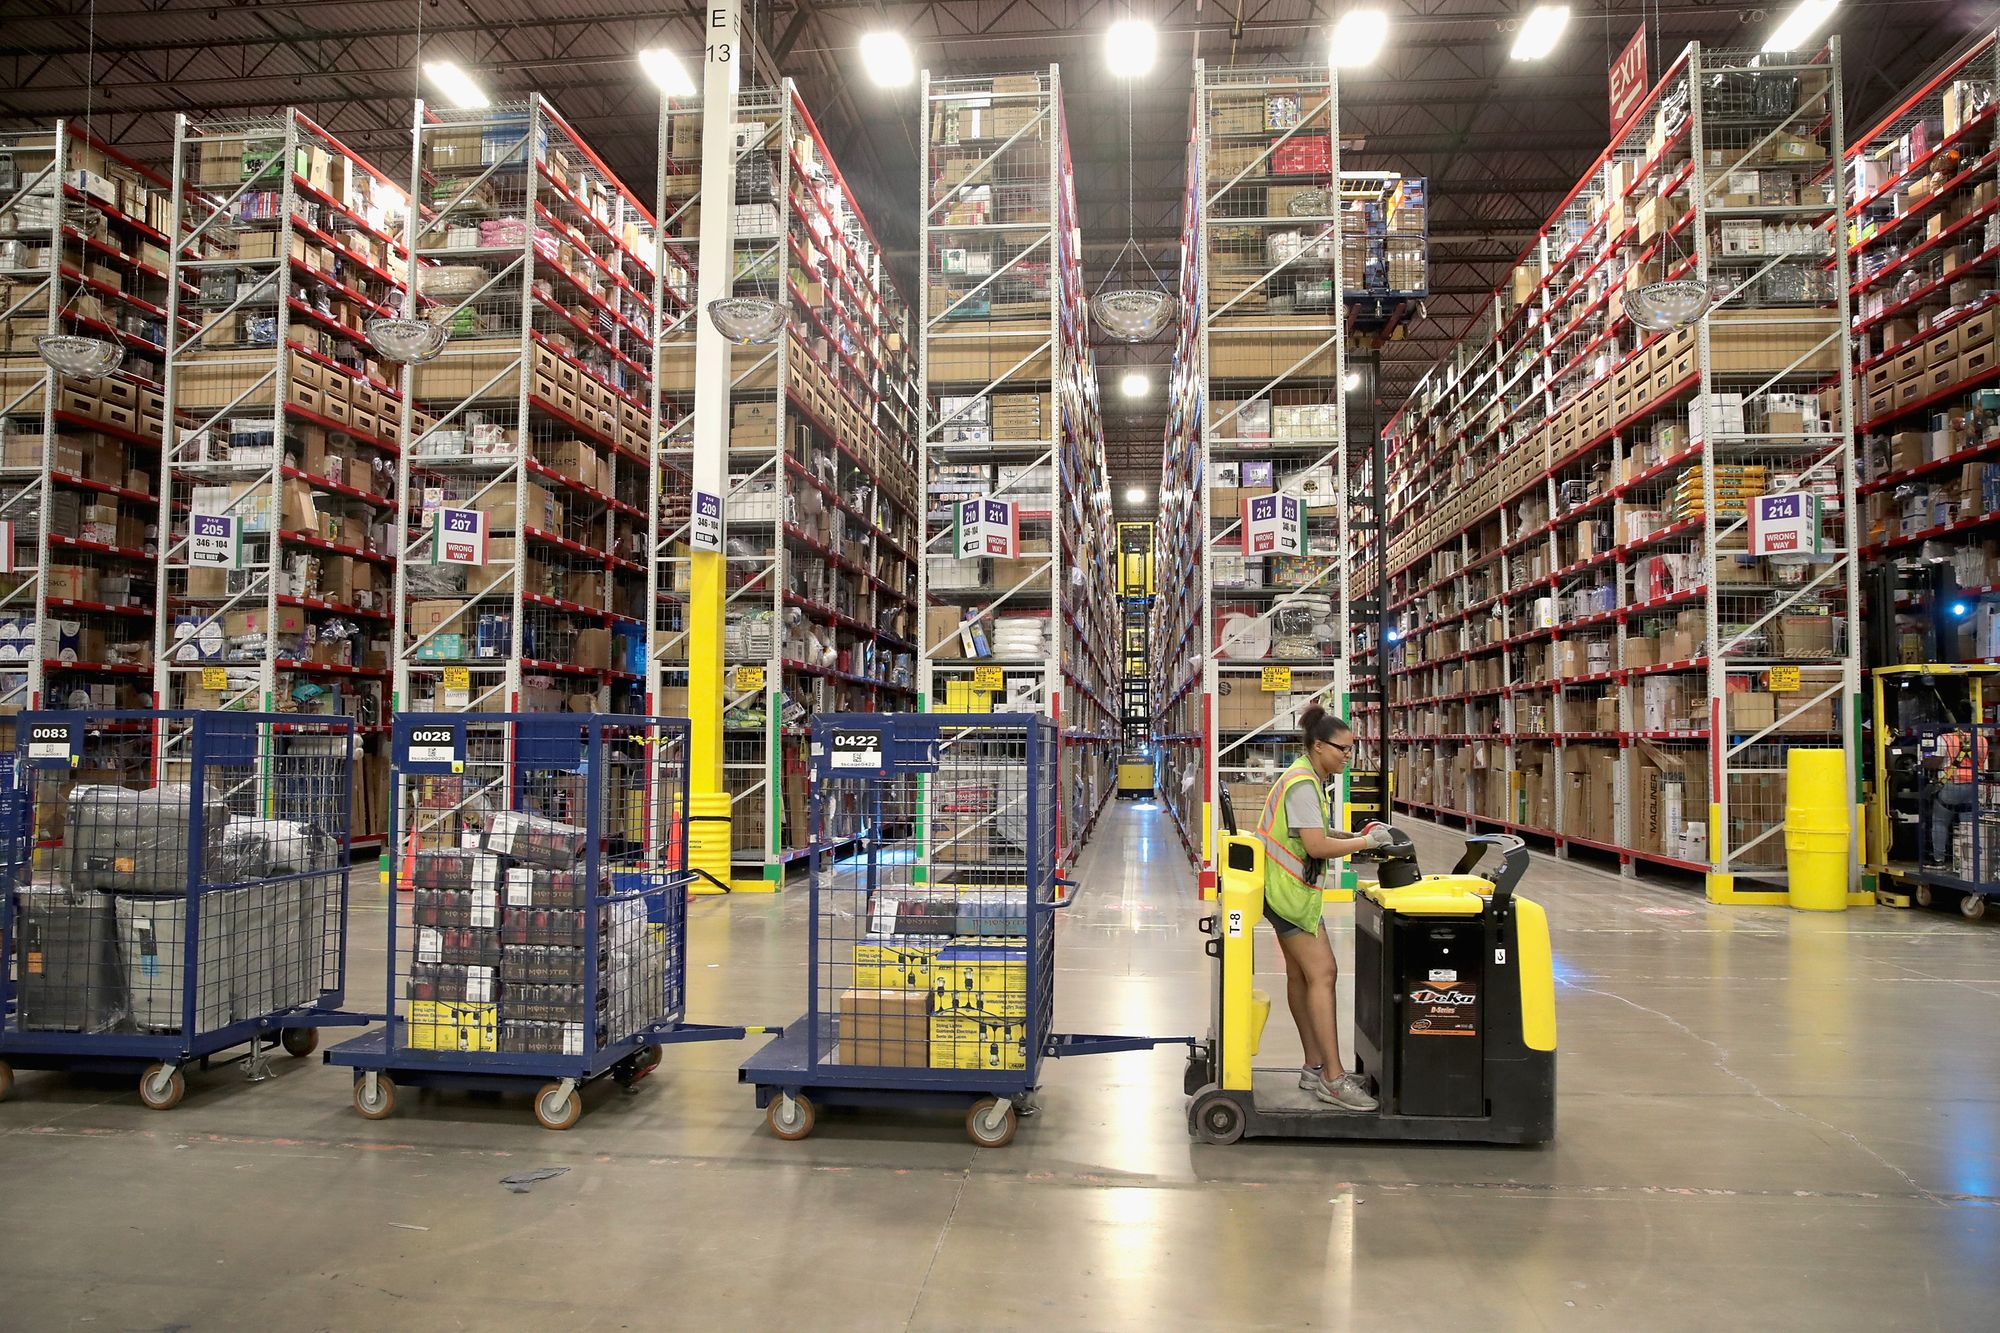 Amazon warehouse with trolly